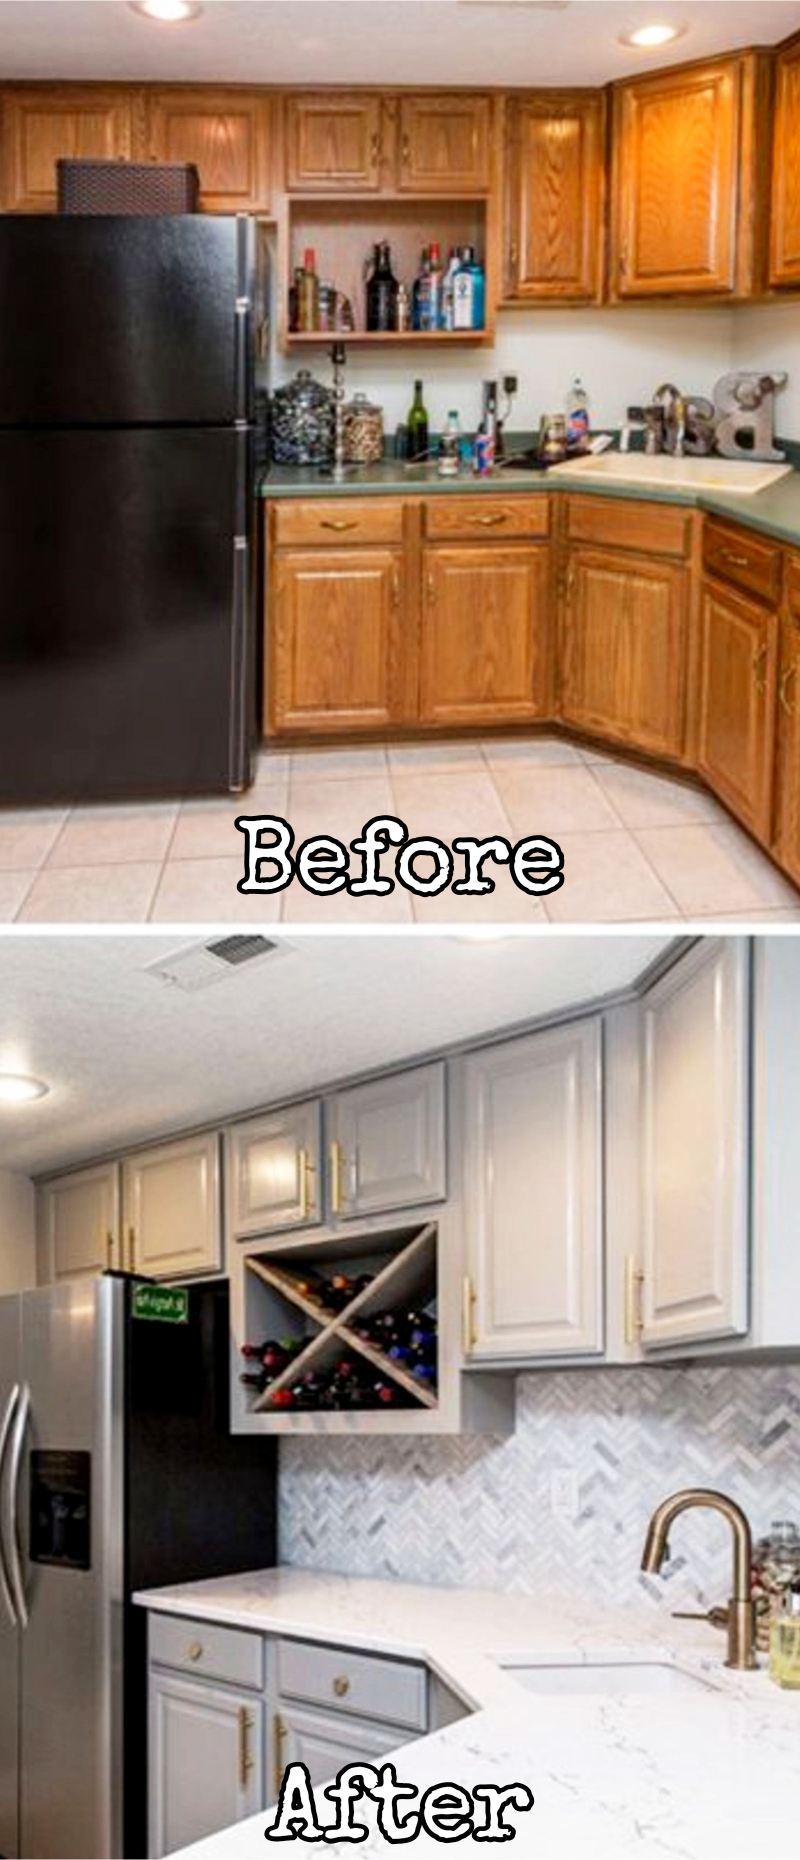 tiny kitchen remodel average cost for cabinets small remodels before and after pictures to drool over of makeovers kitchenideas farmhousedecor